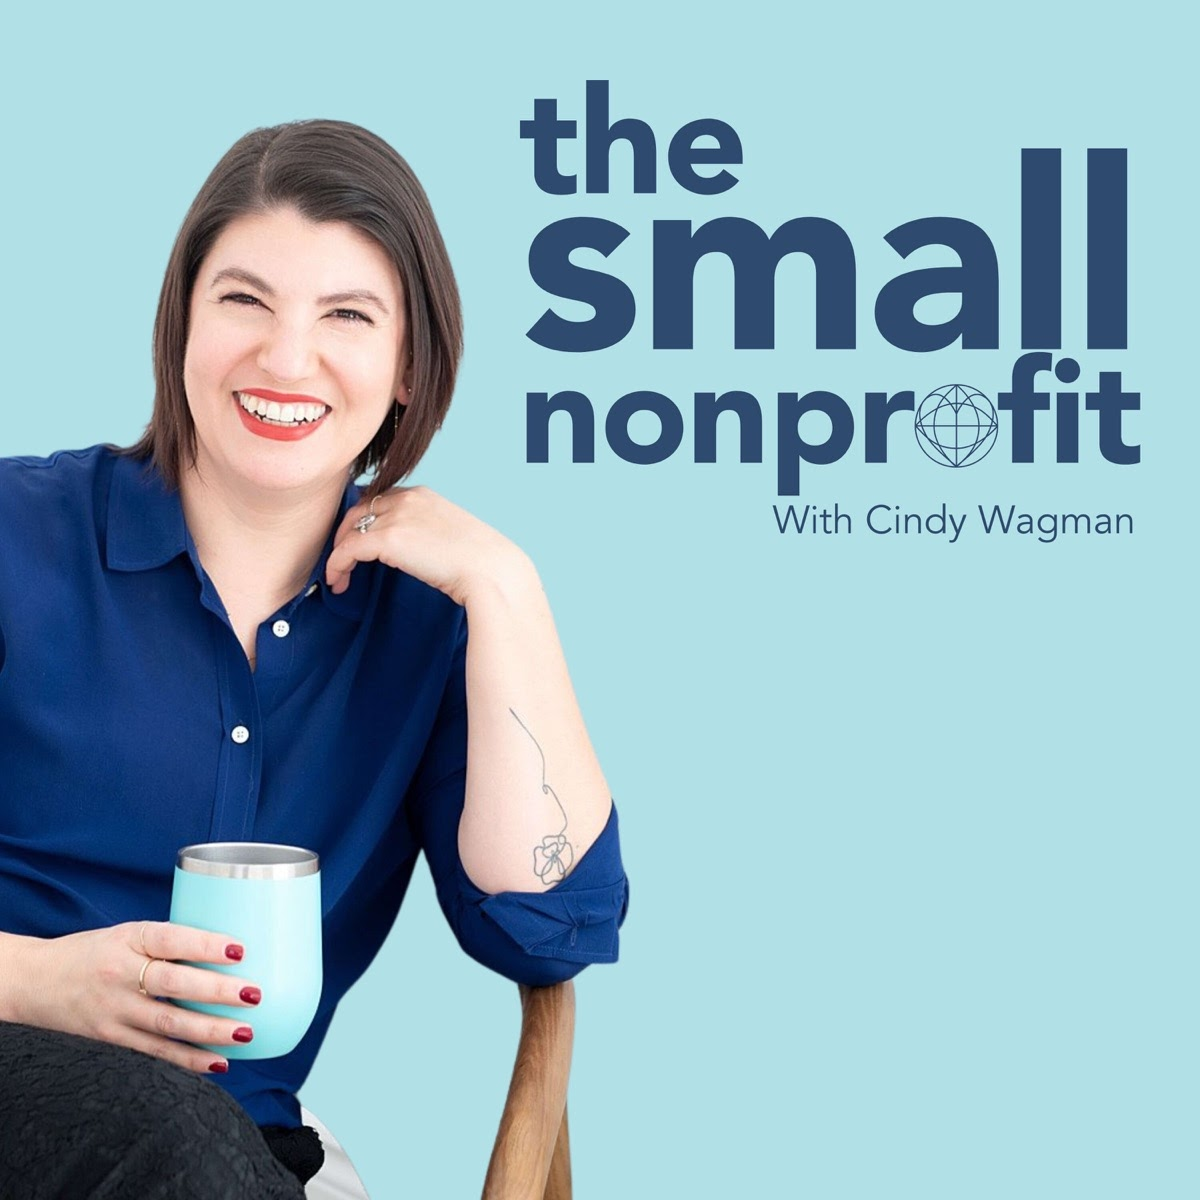 The Small Nonprofit by Cindy Wagman